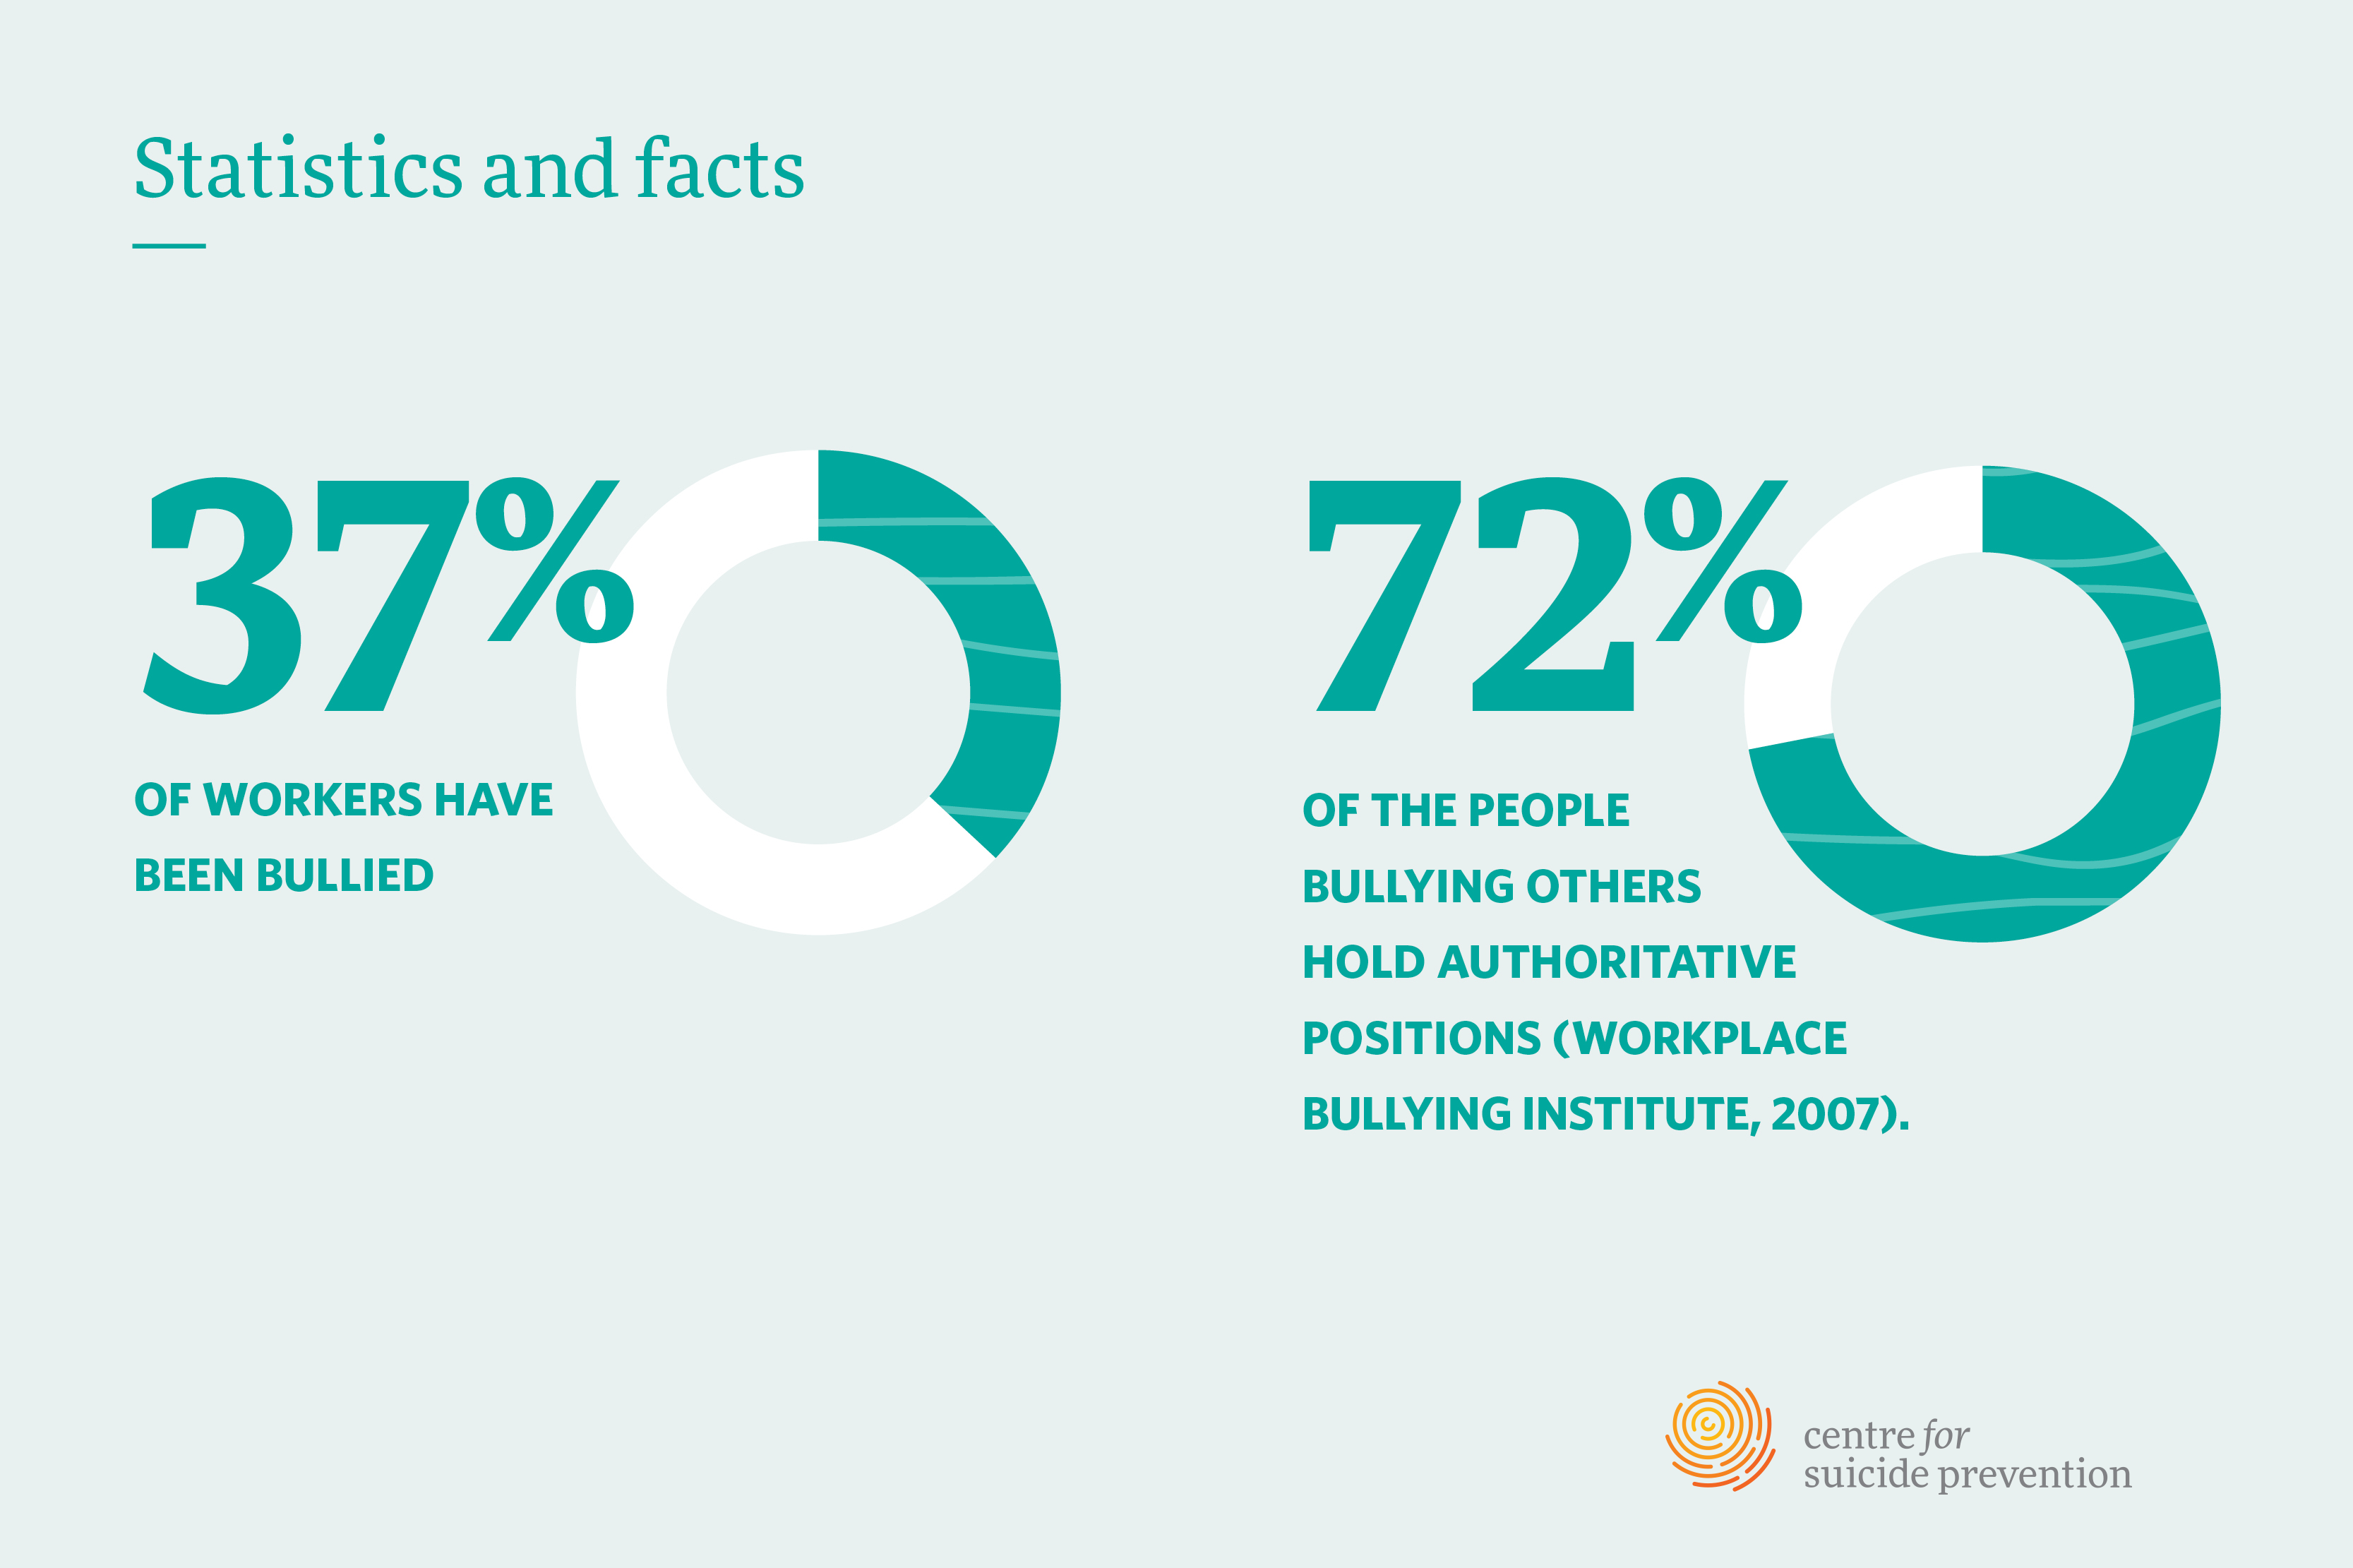 Stats and facts about workplace bullying